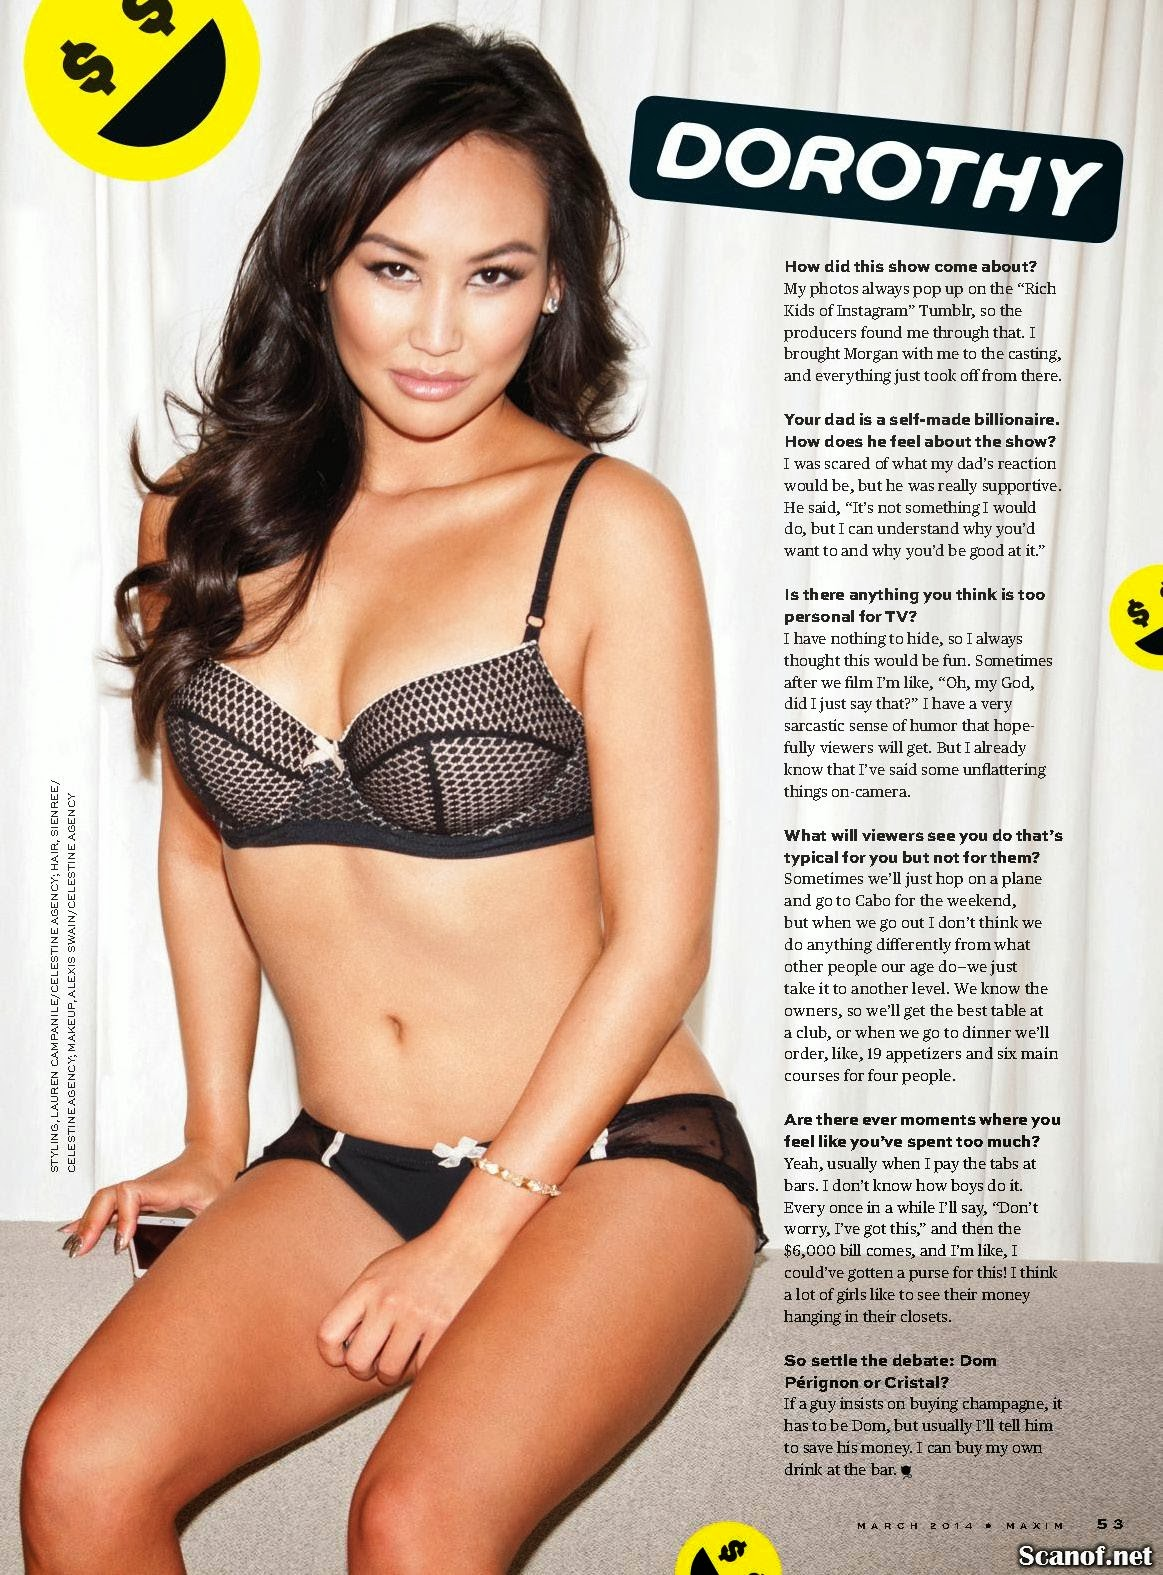 Maxim Magazine Cover Girls submited images.